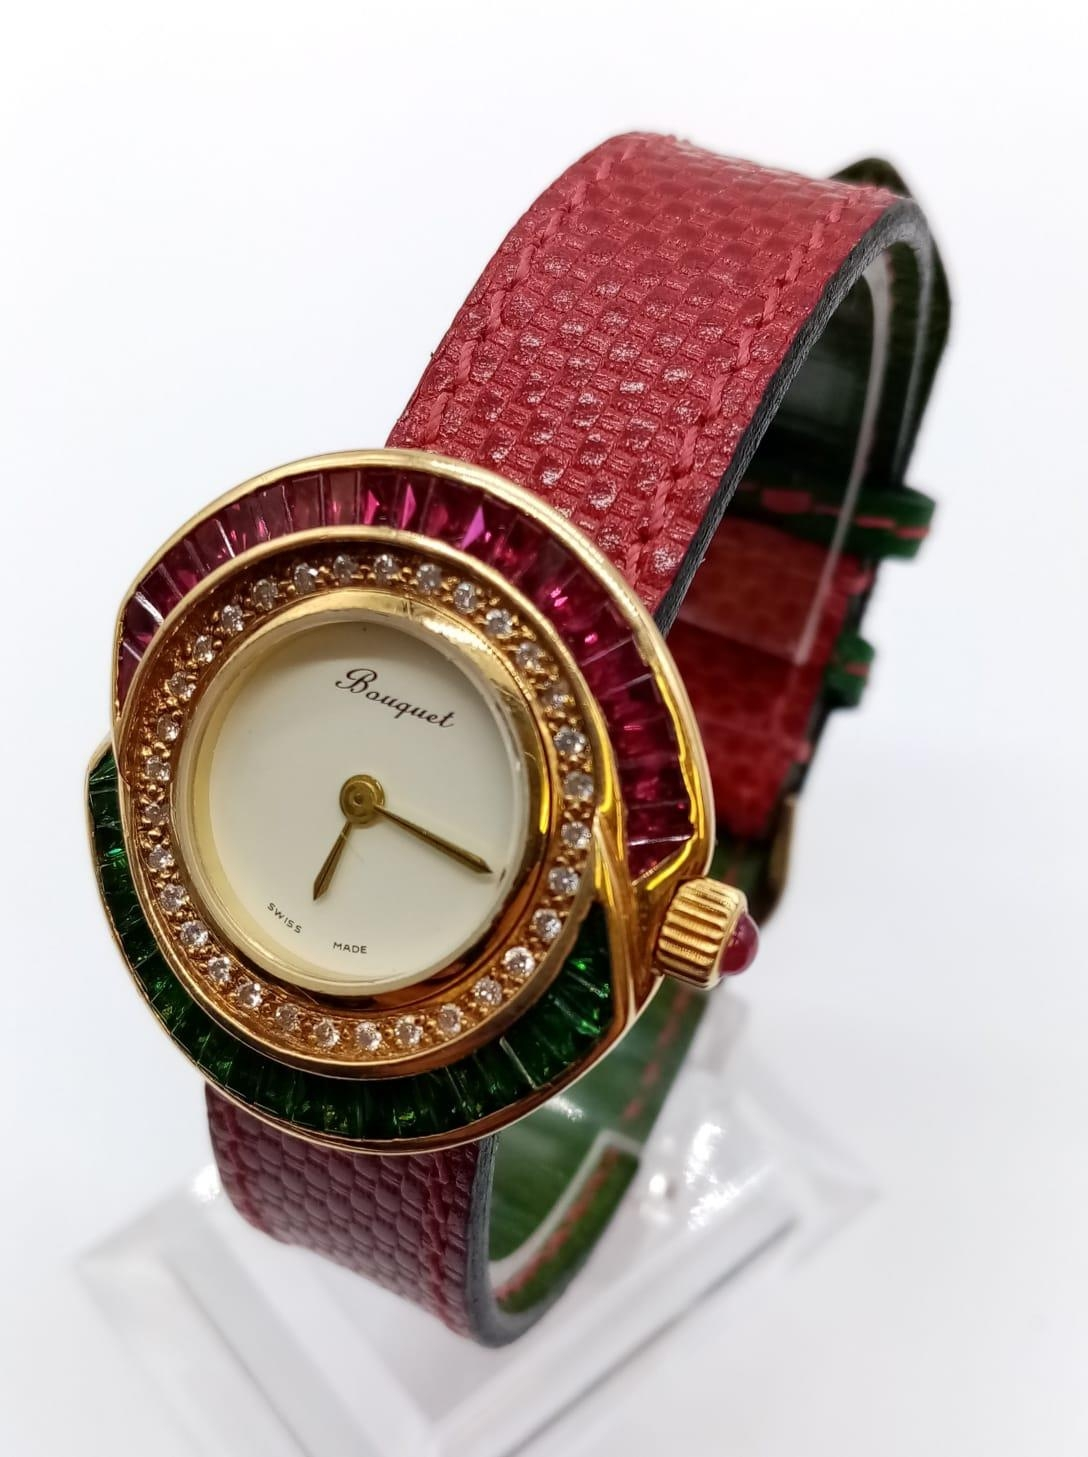 Vintage Bouquet 18ct gold ladies dress watch, round face with emerald, ruby and diamonds surround, - Image 2 of 9